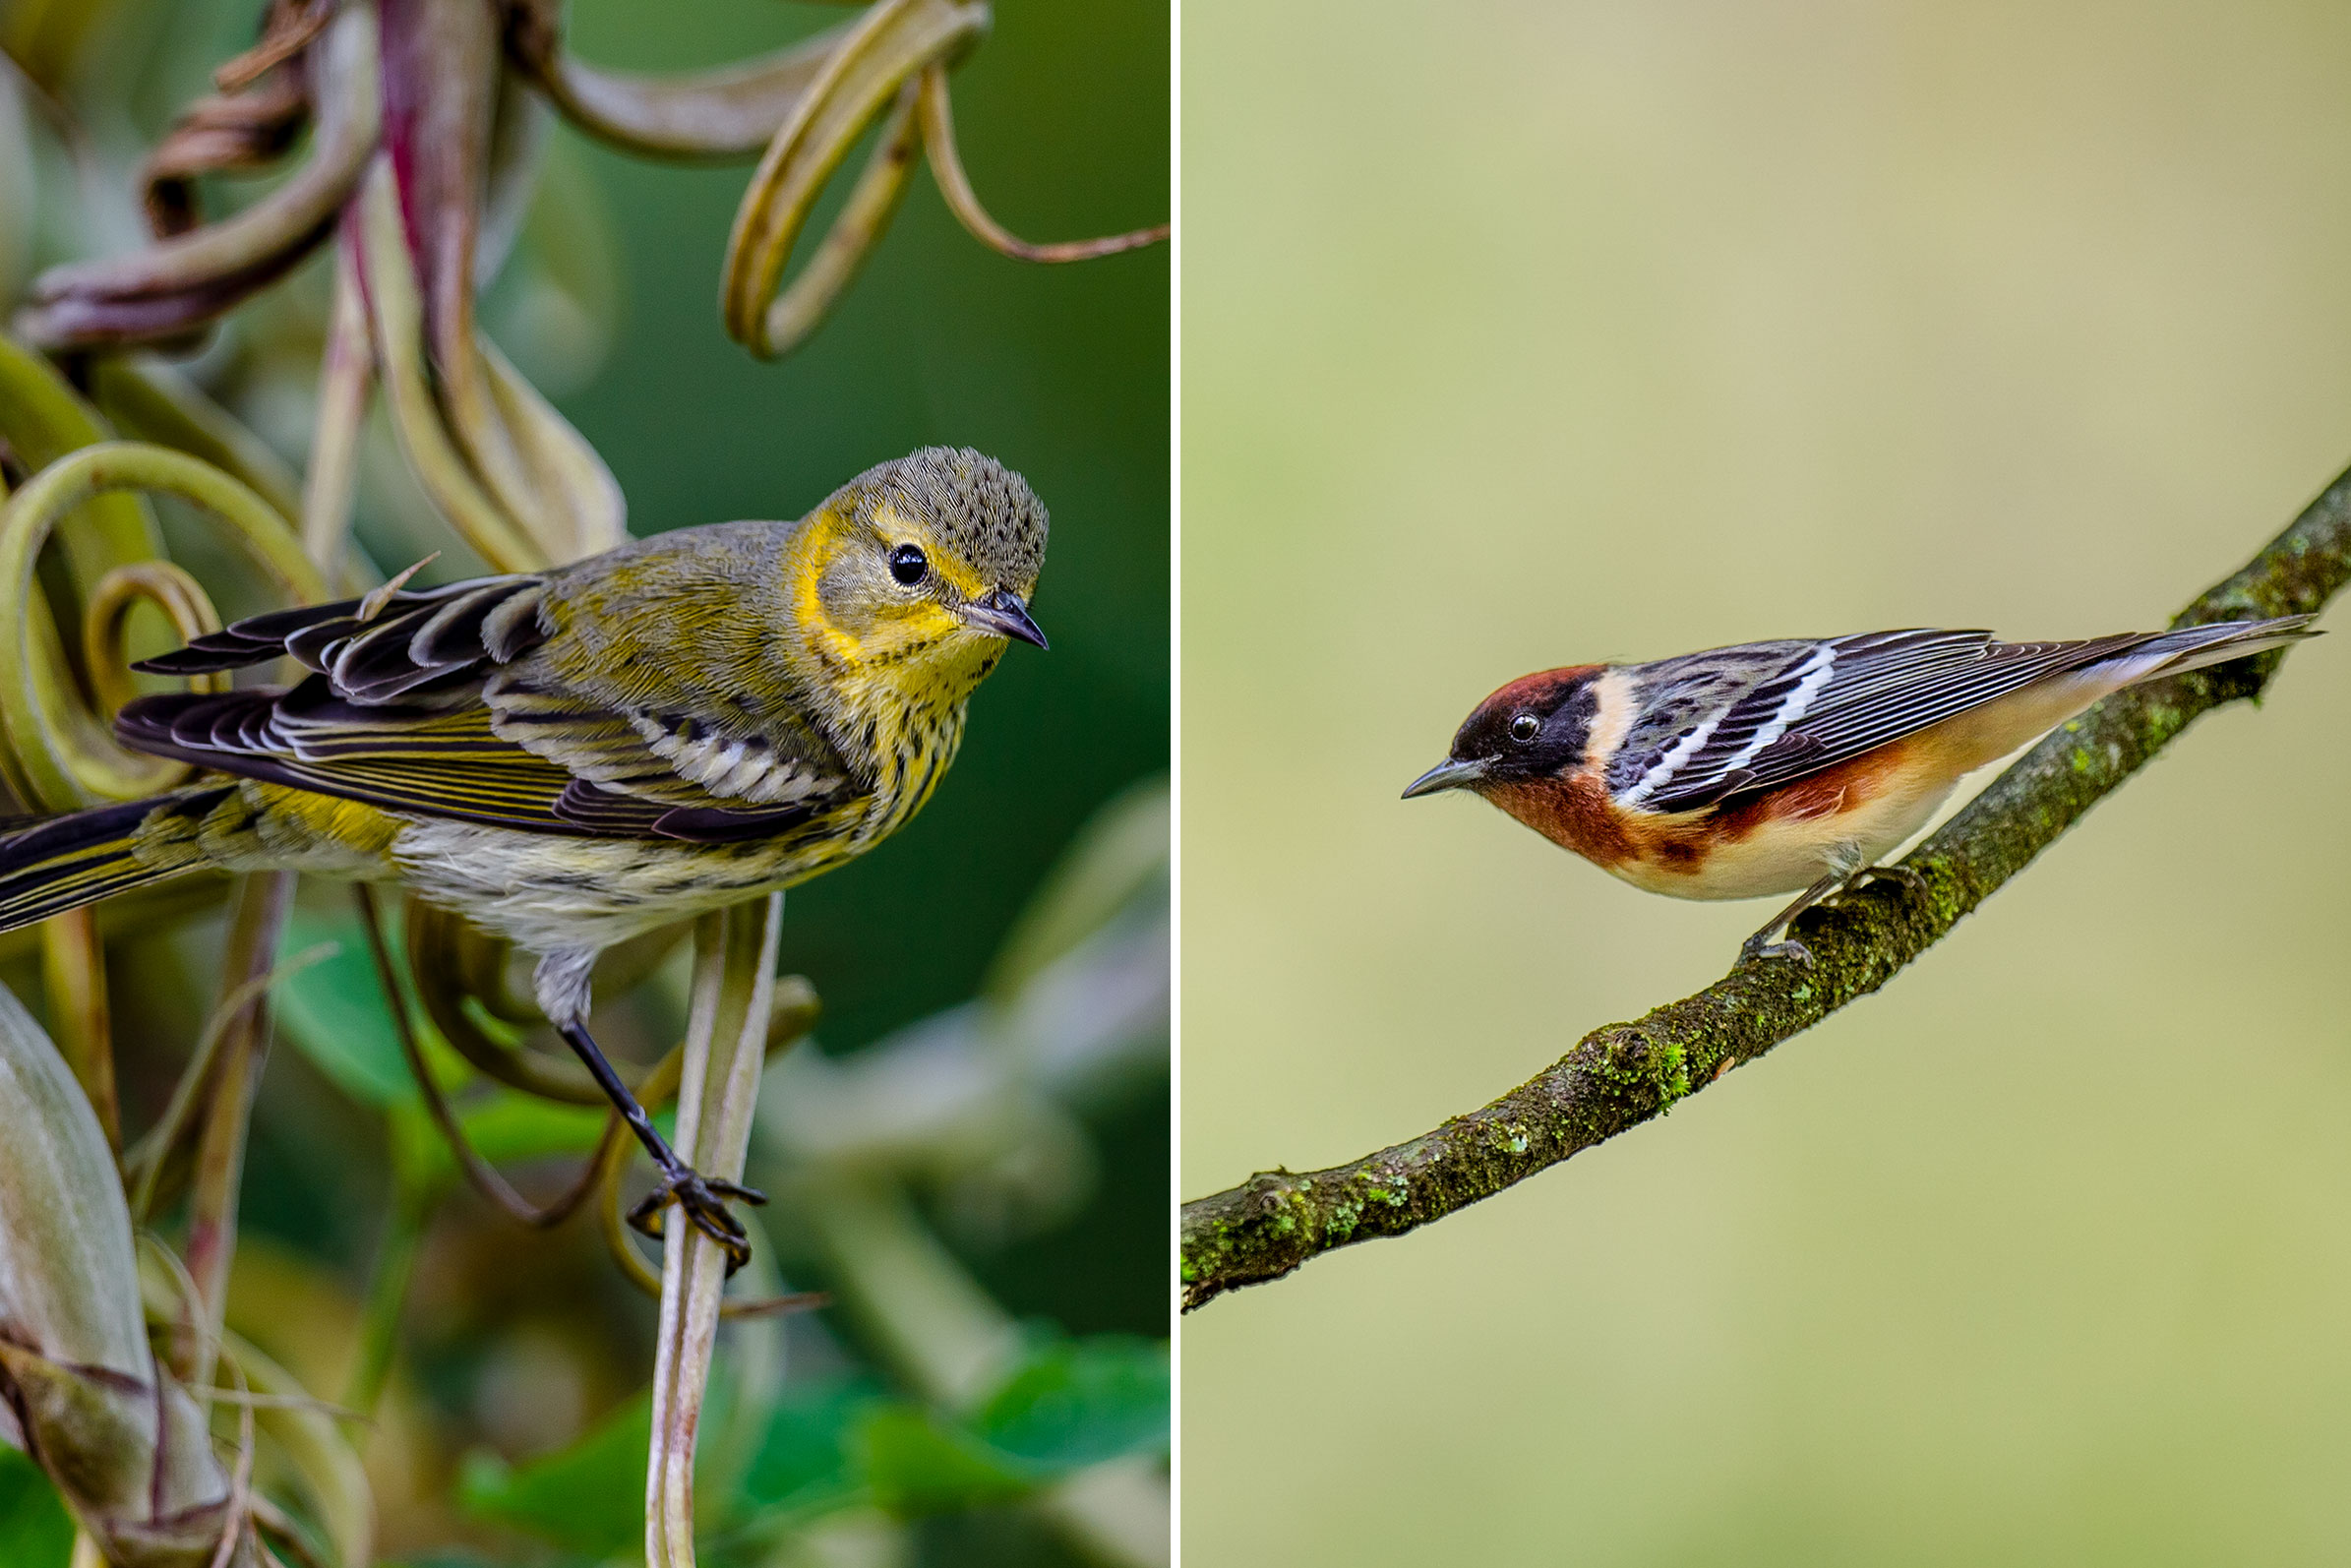 Photos from left: Cape May Warbler, Lorraine Minns/Audubon Photography Awards; Bay-breasted Warbler, Ray Hennessy/iStock